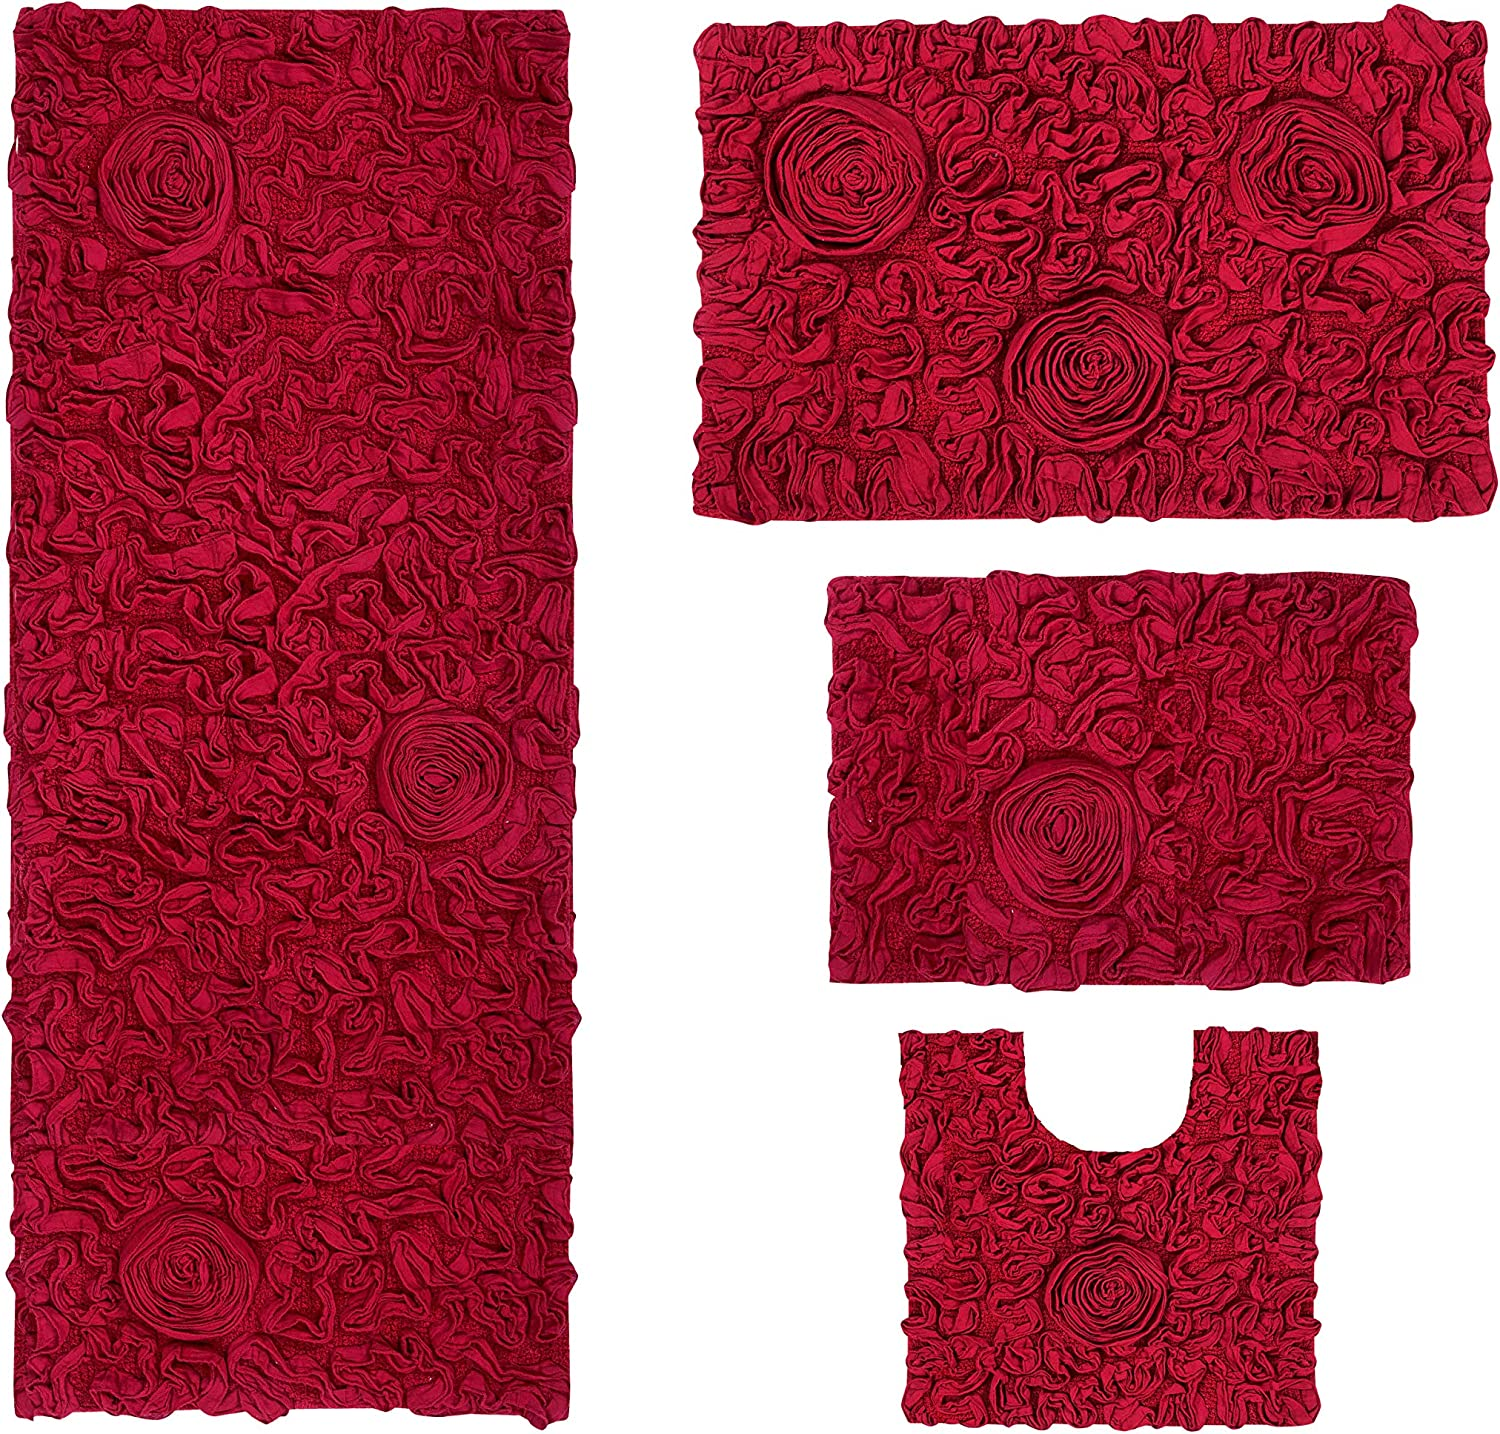 Amazon Com Home Weavers Bell Flower Collection Absorbent Cotton Soft Rug Machine Wash Dry 17 X24 21 X34 20 X20 21 X54 Red Home Kitchen